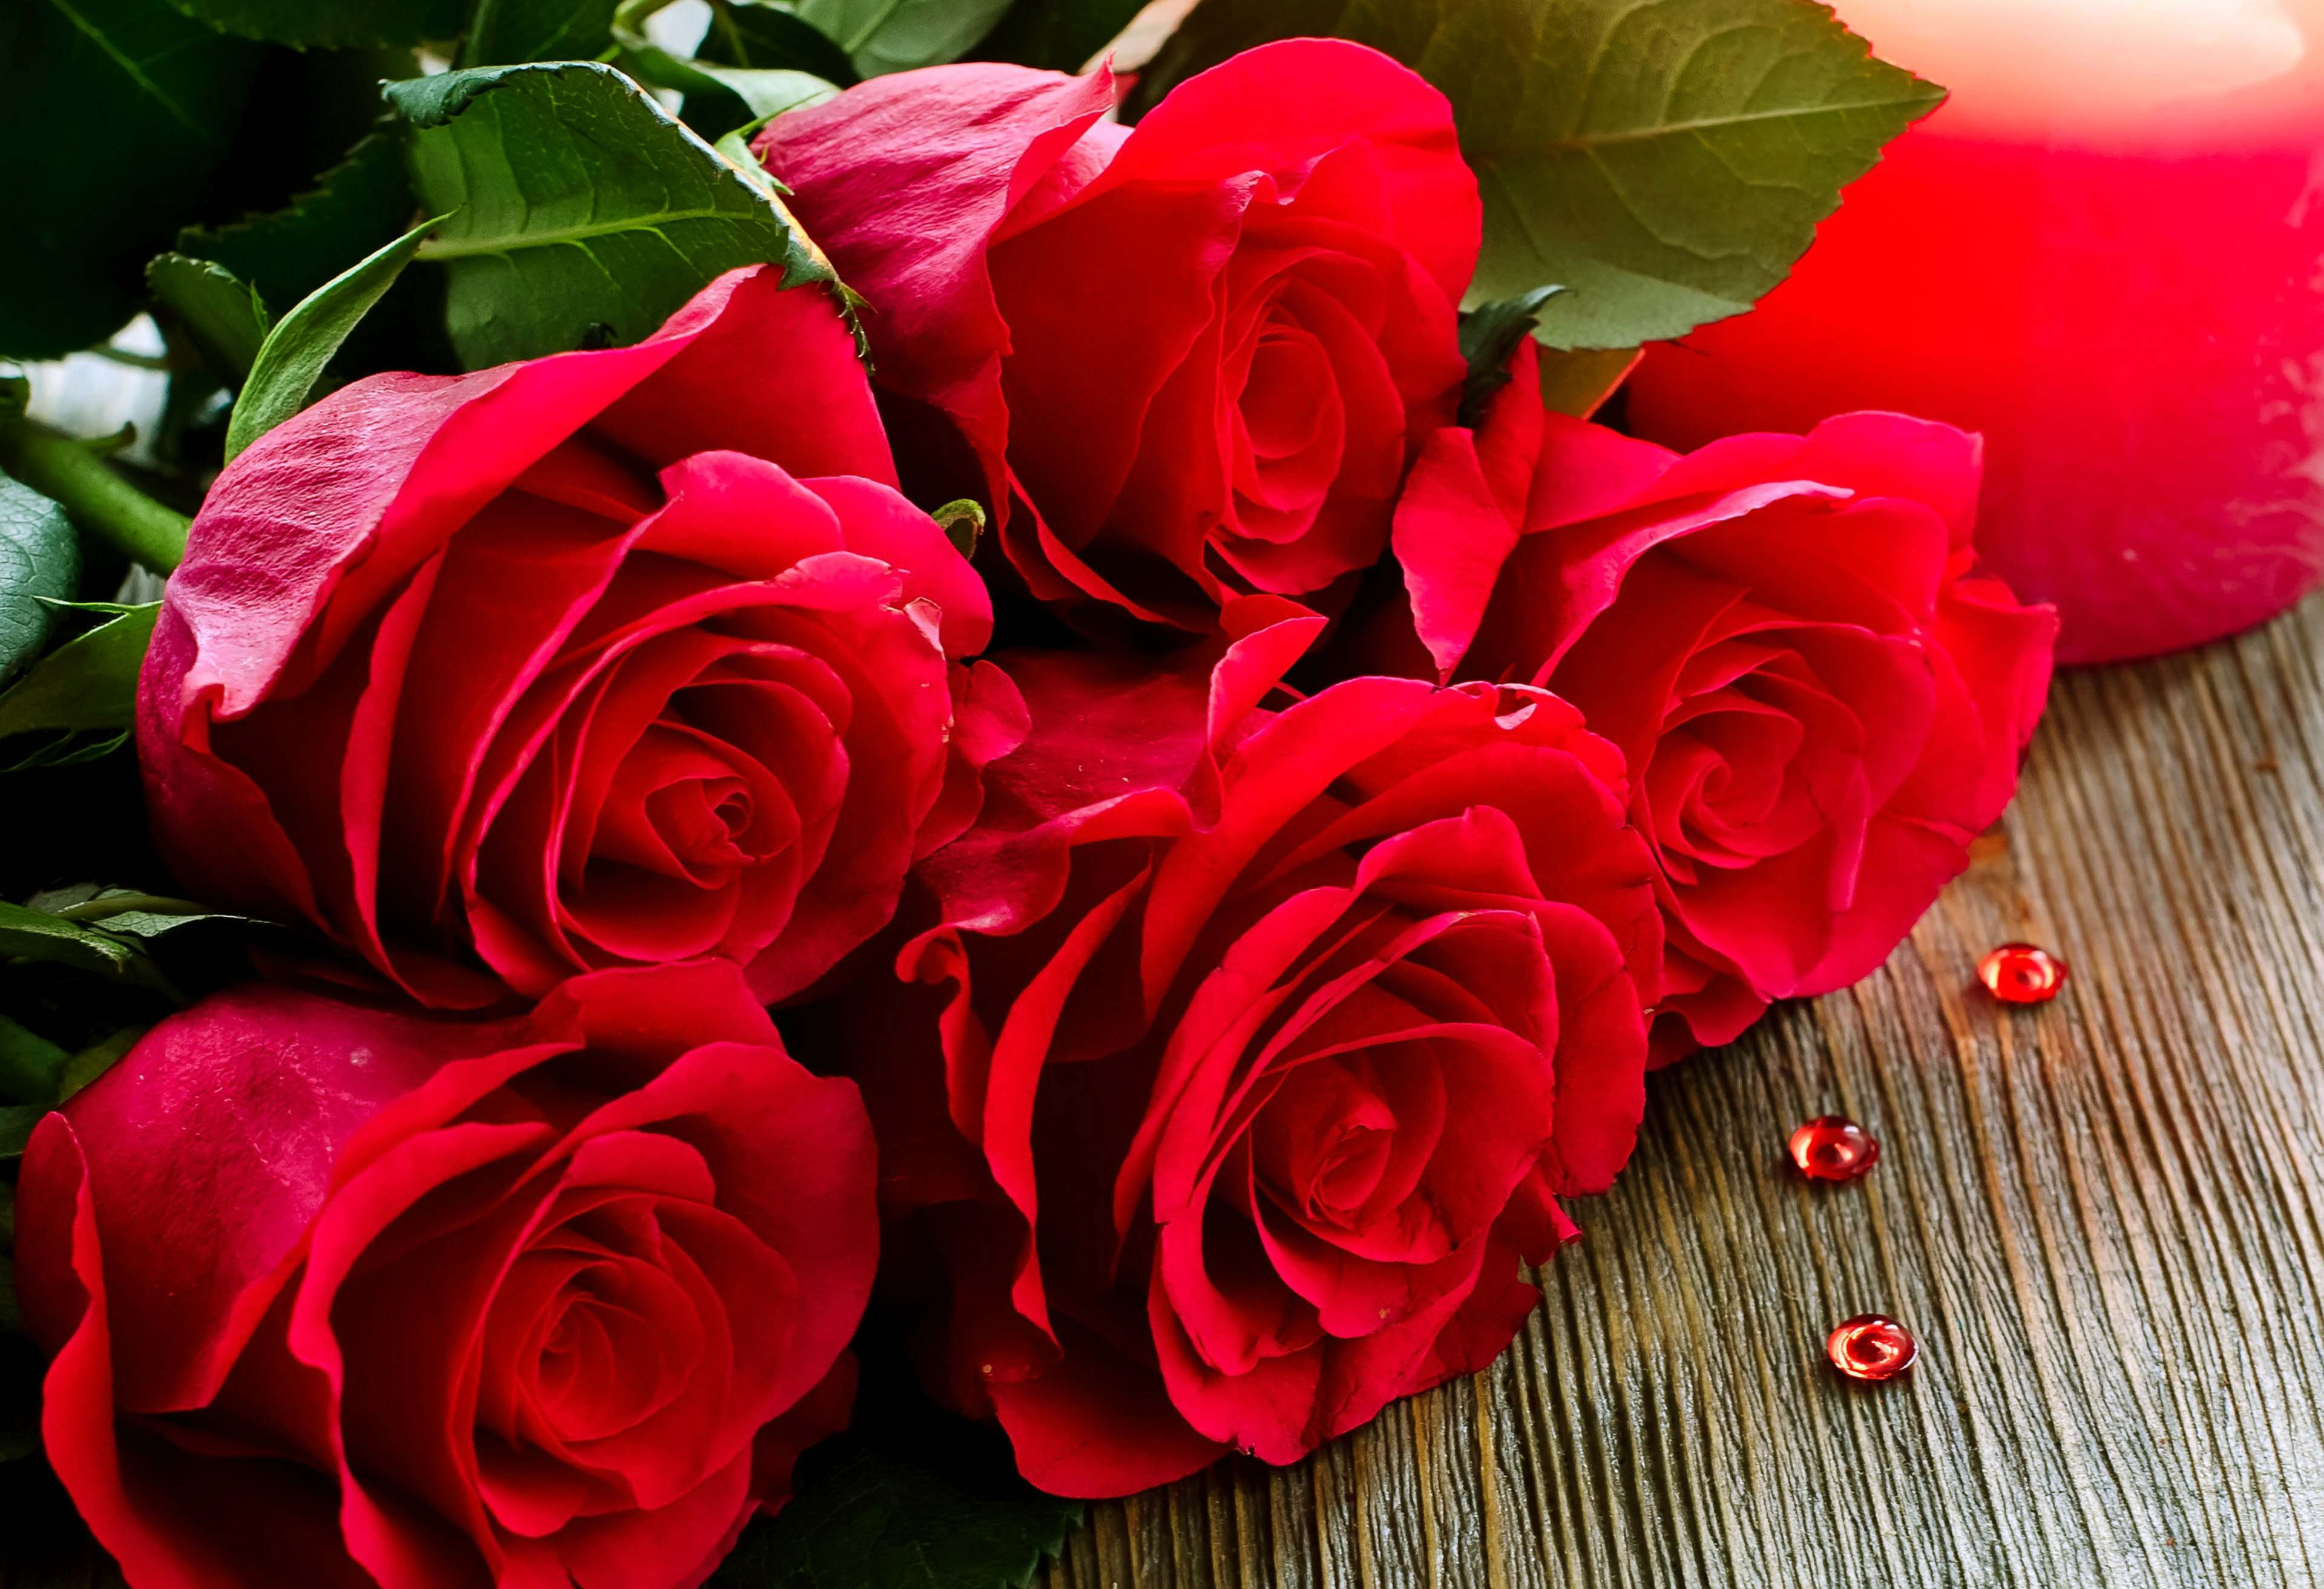 Red Roses Wallpapers Hd Posted By Sarah Simpson